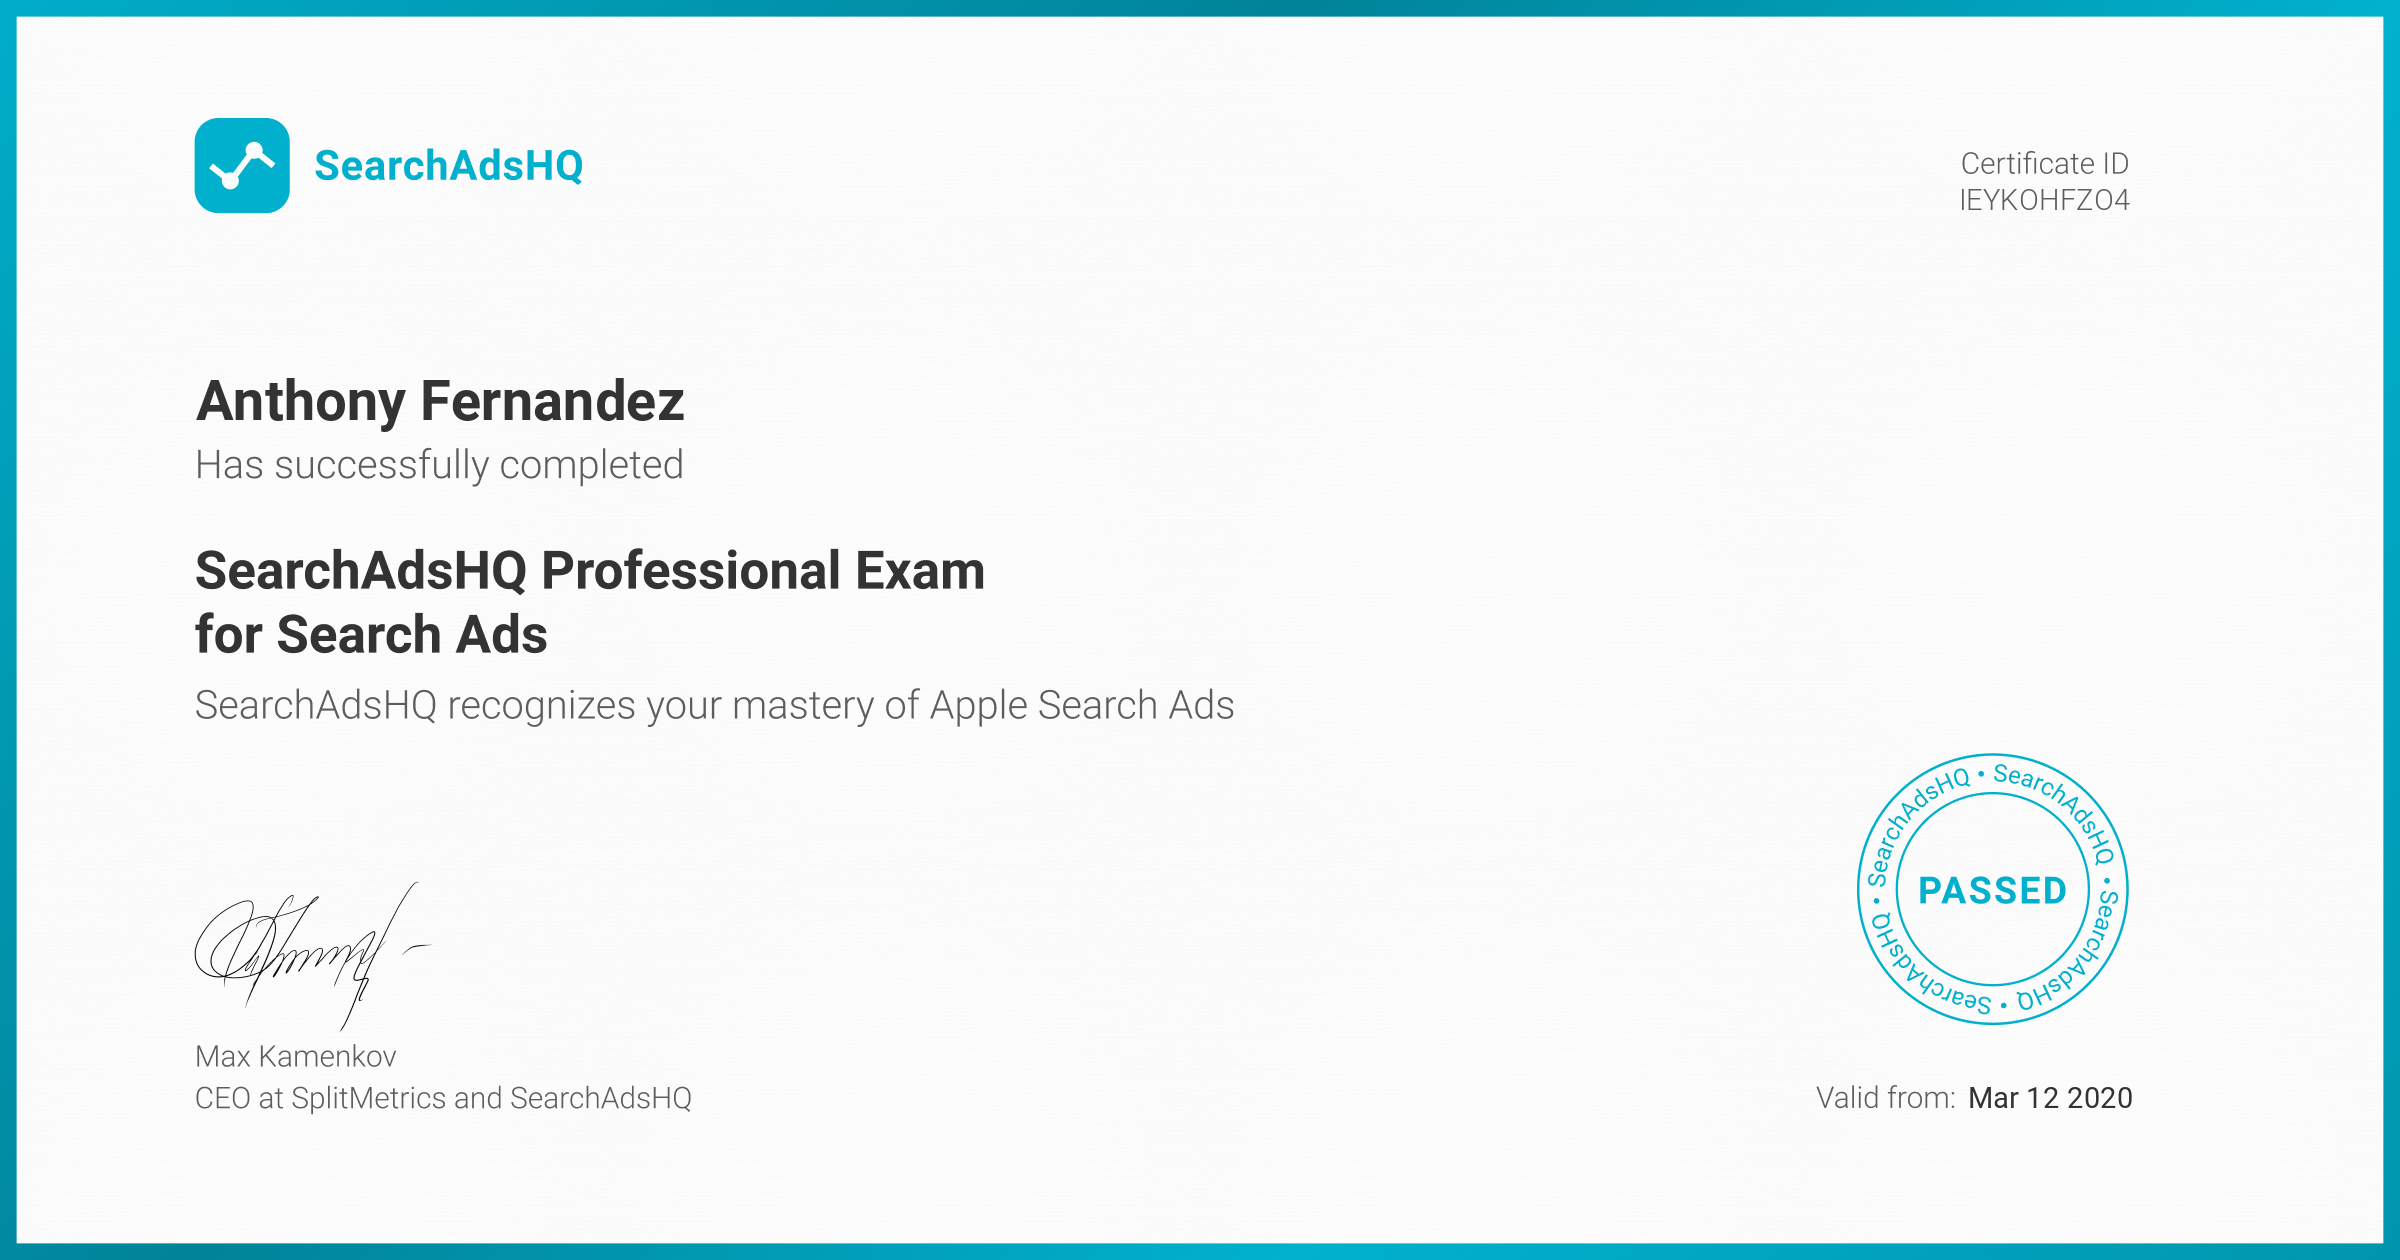 Certificate for Anthony Fernandez | SearchAdsHQ Professional Exam for Search Ads